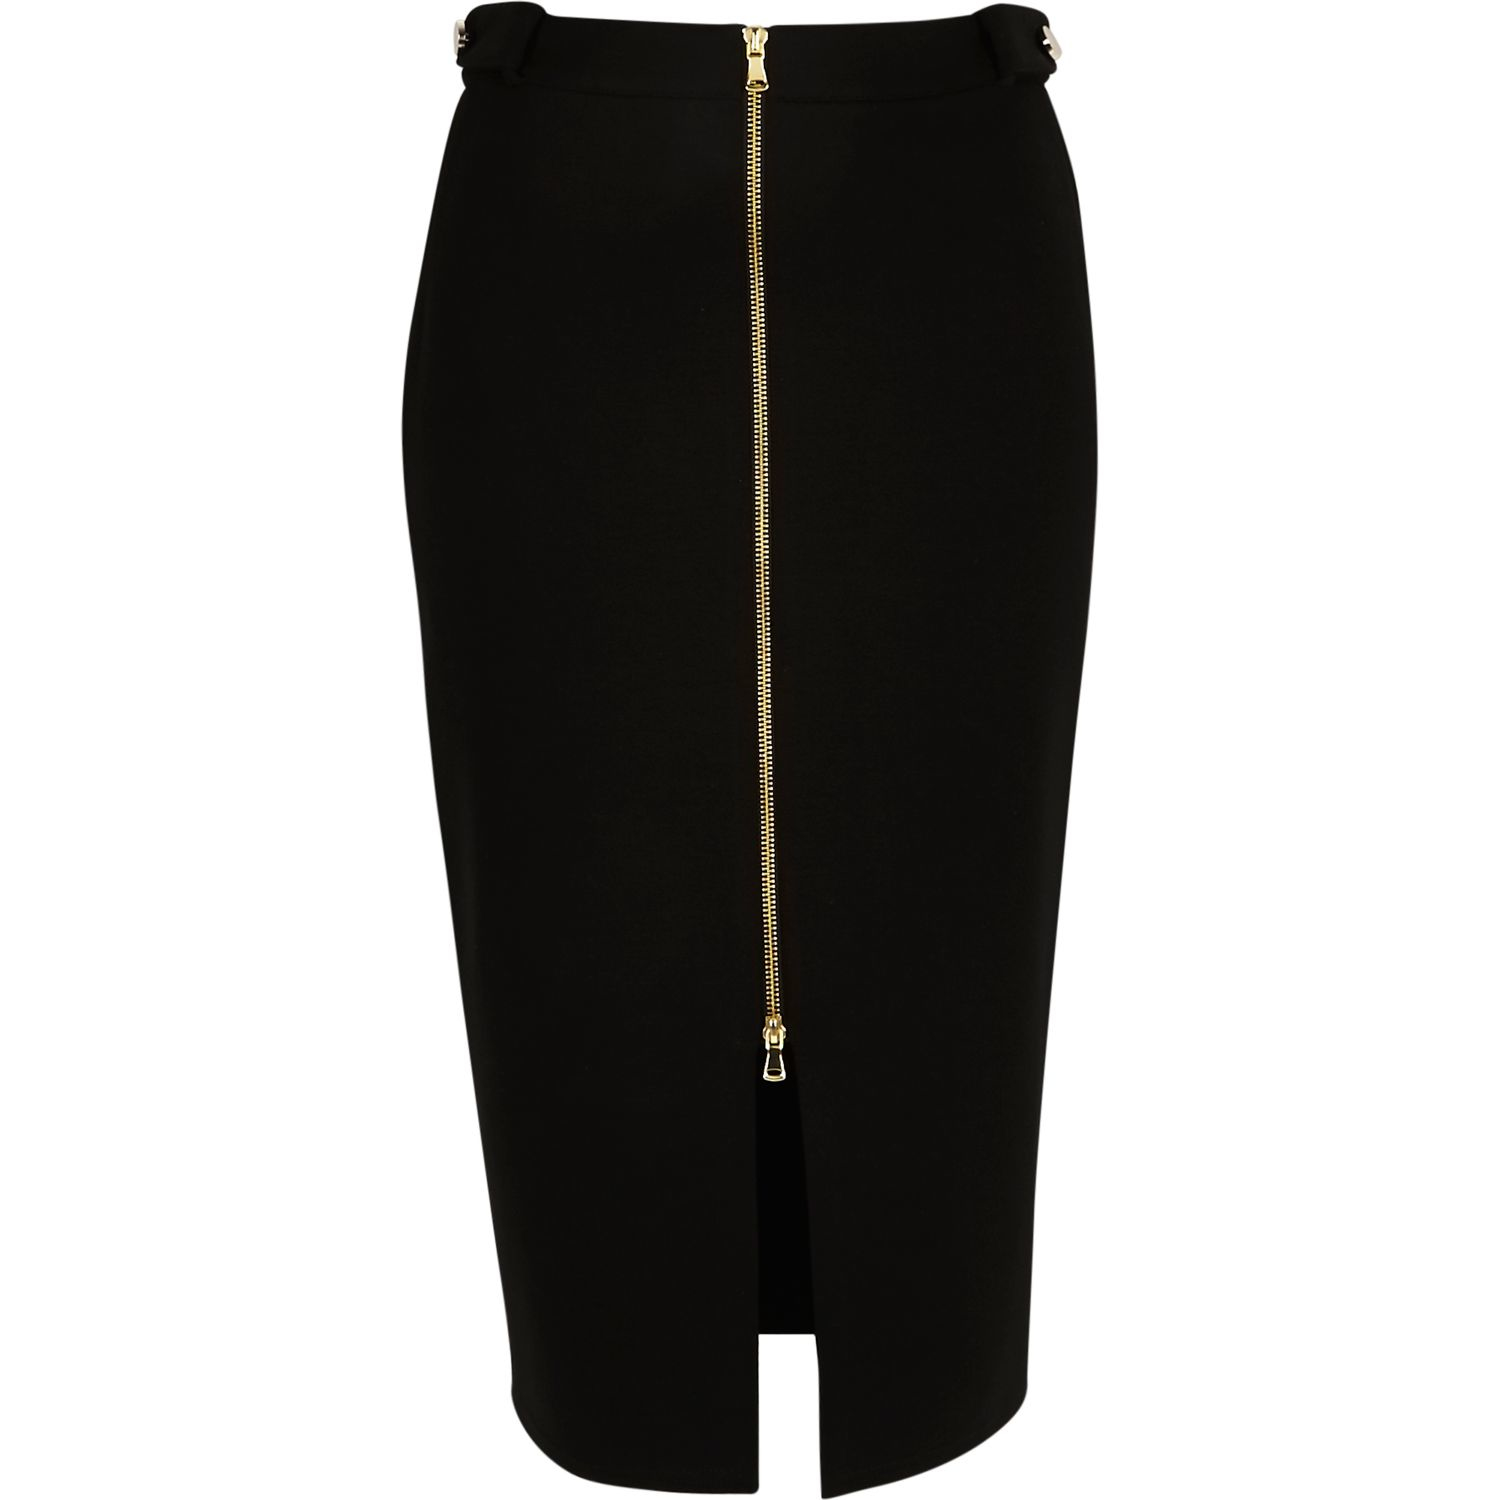 Zip Up Pencil Skirt - Dress Ala